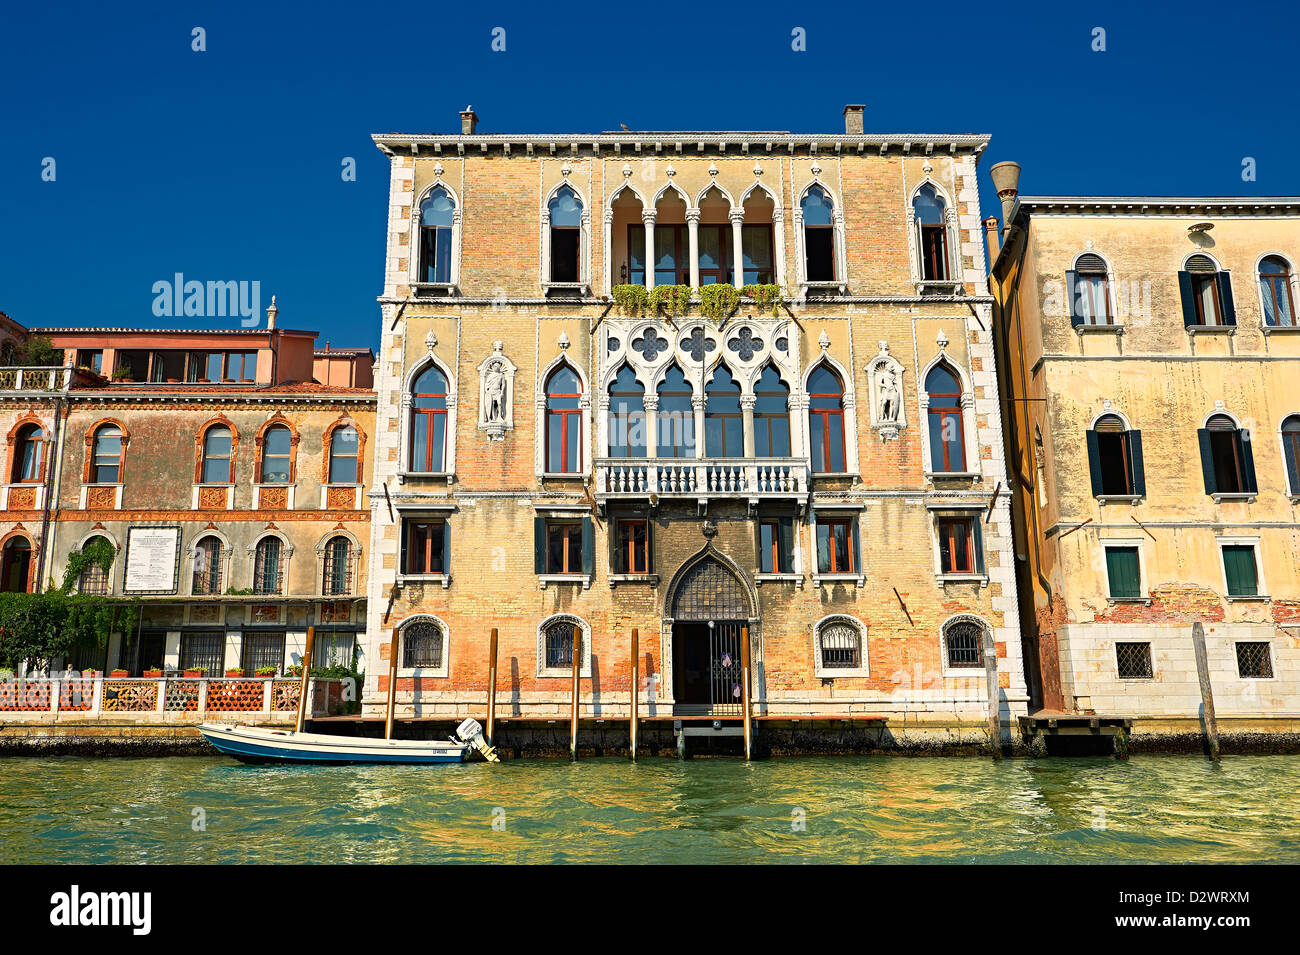 Venetian Gothic Palaces on the Grand Canal Venice Stock Photo